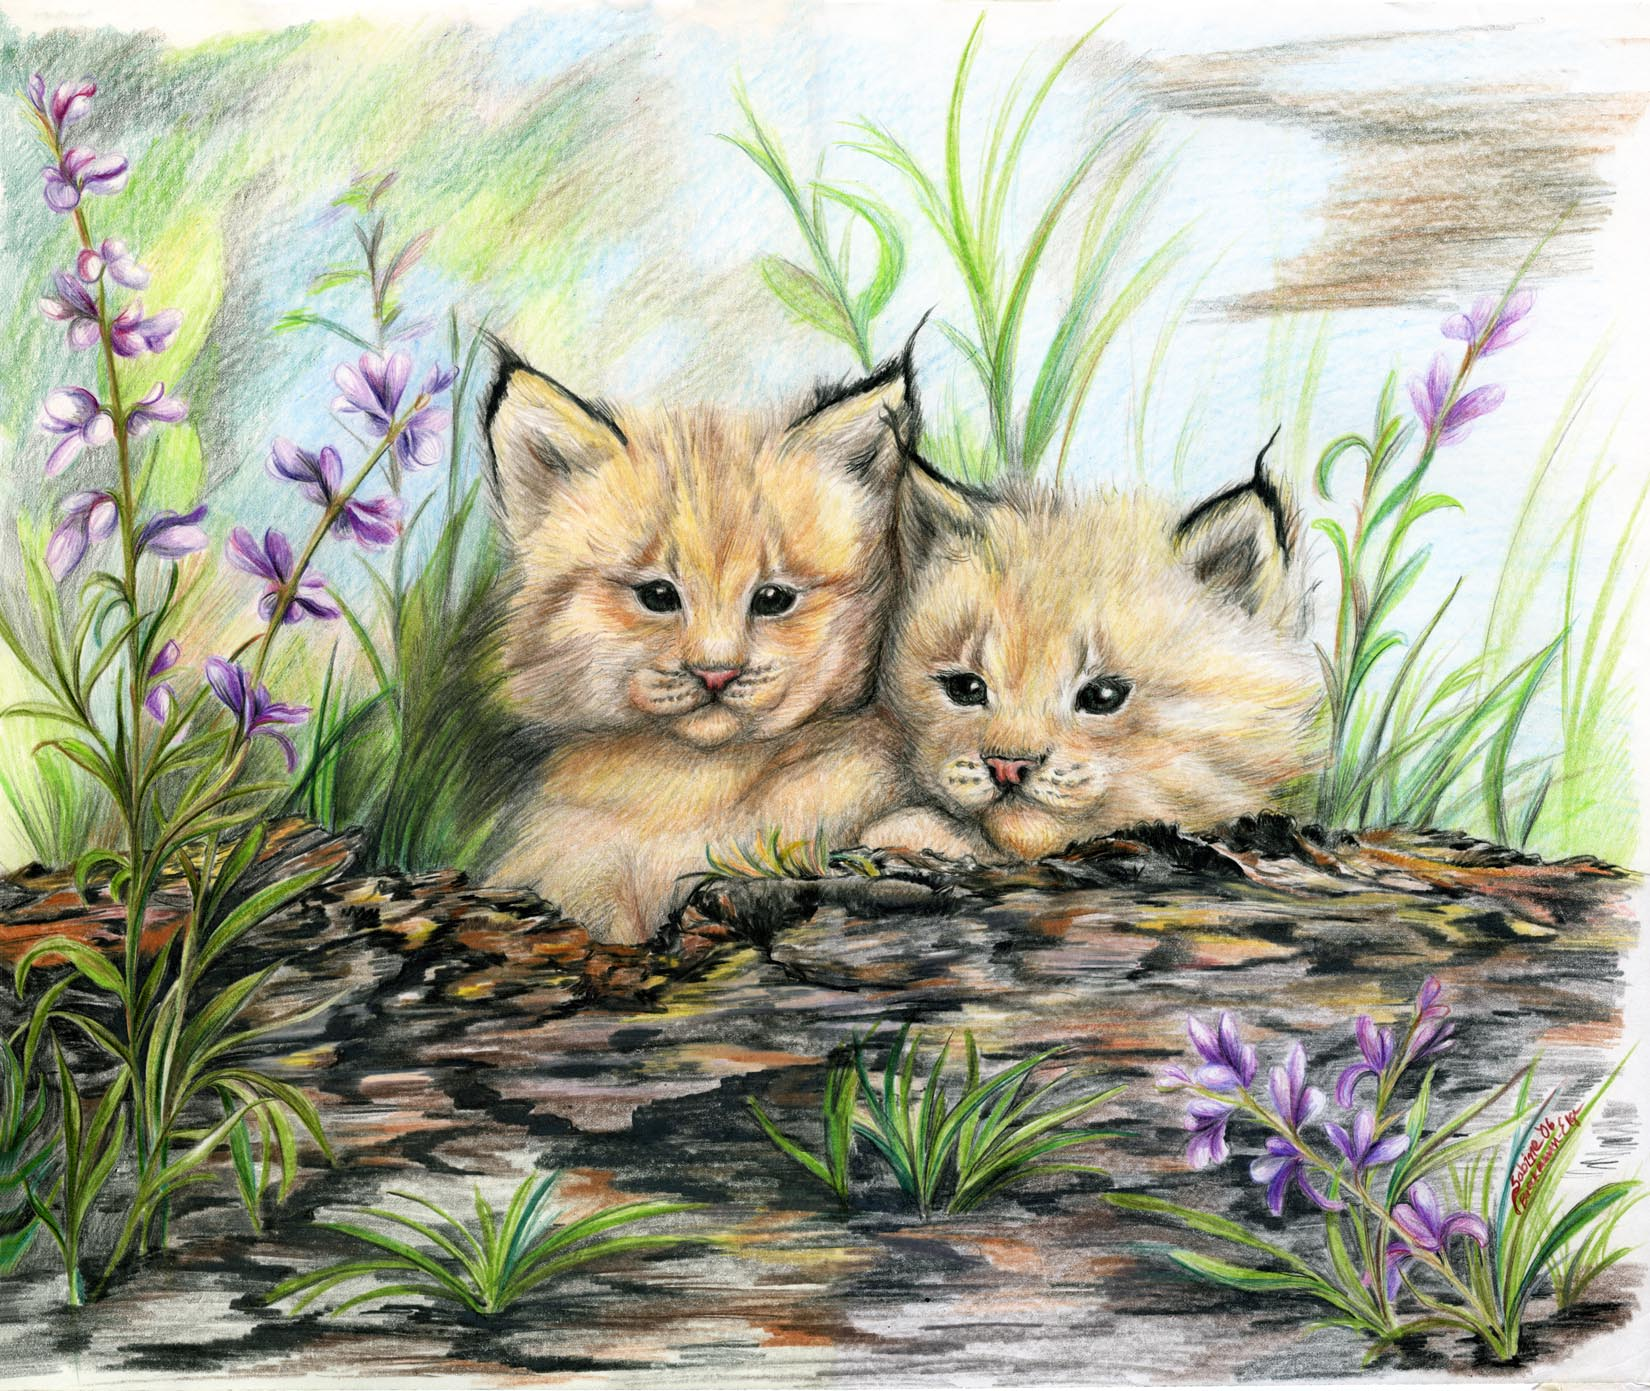 Linx Kittens, original colored pencil